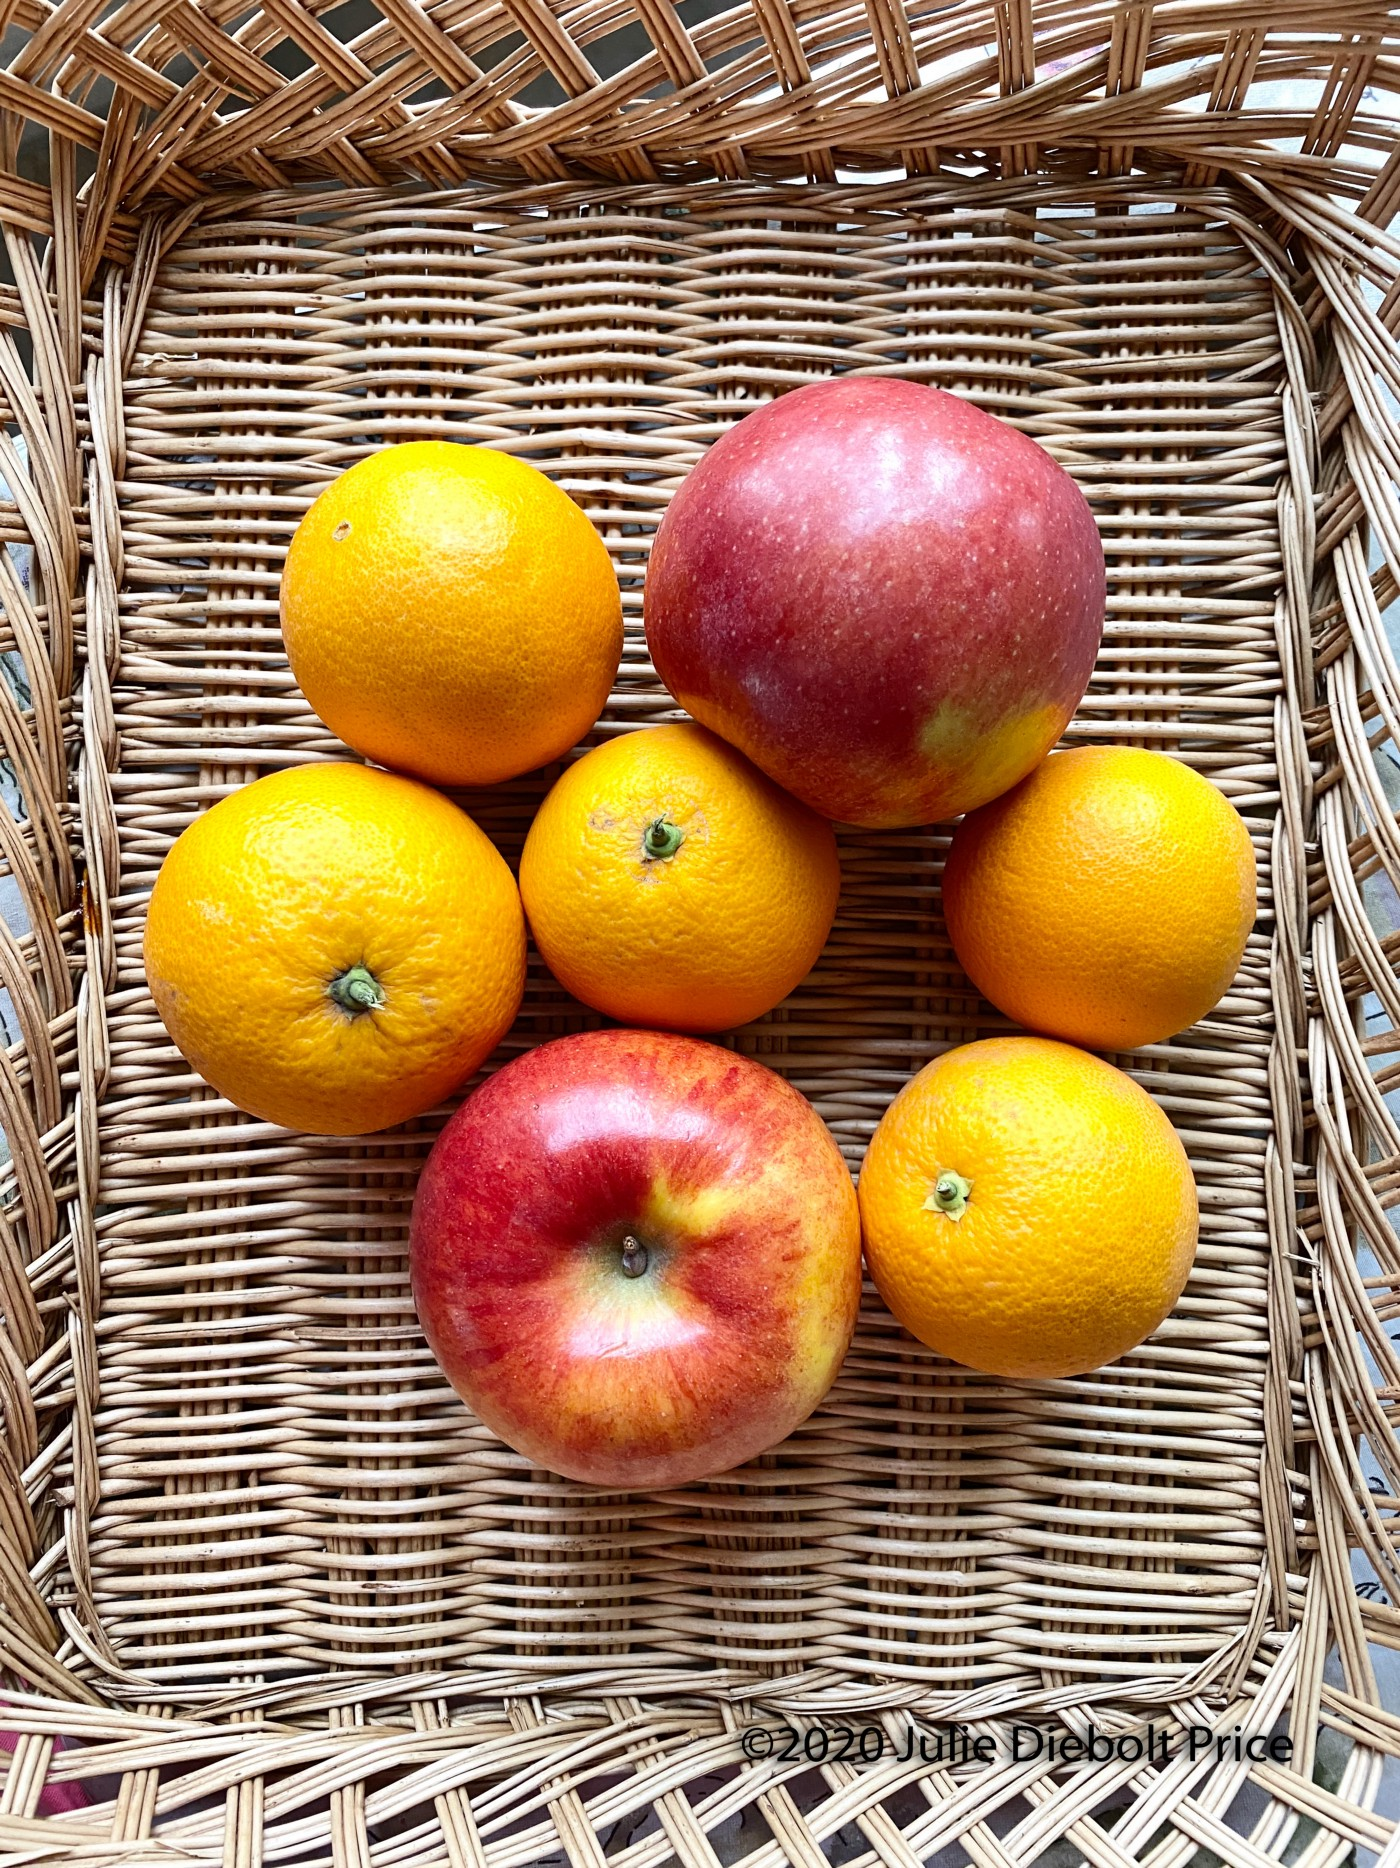 A basket of apples and oranges—mixing apples and oranges